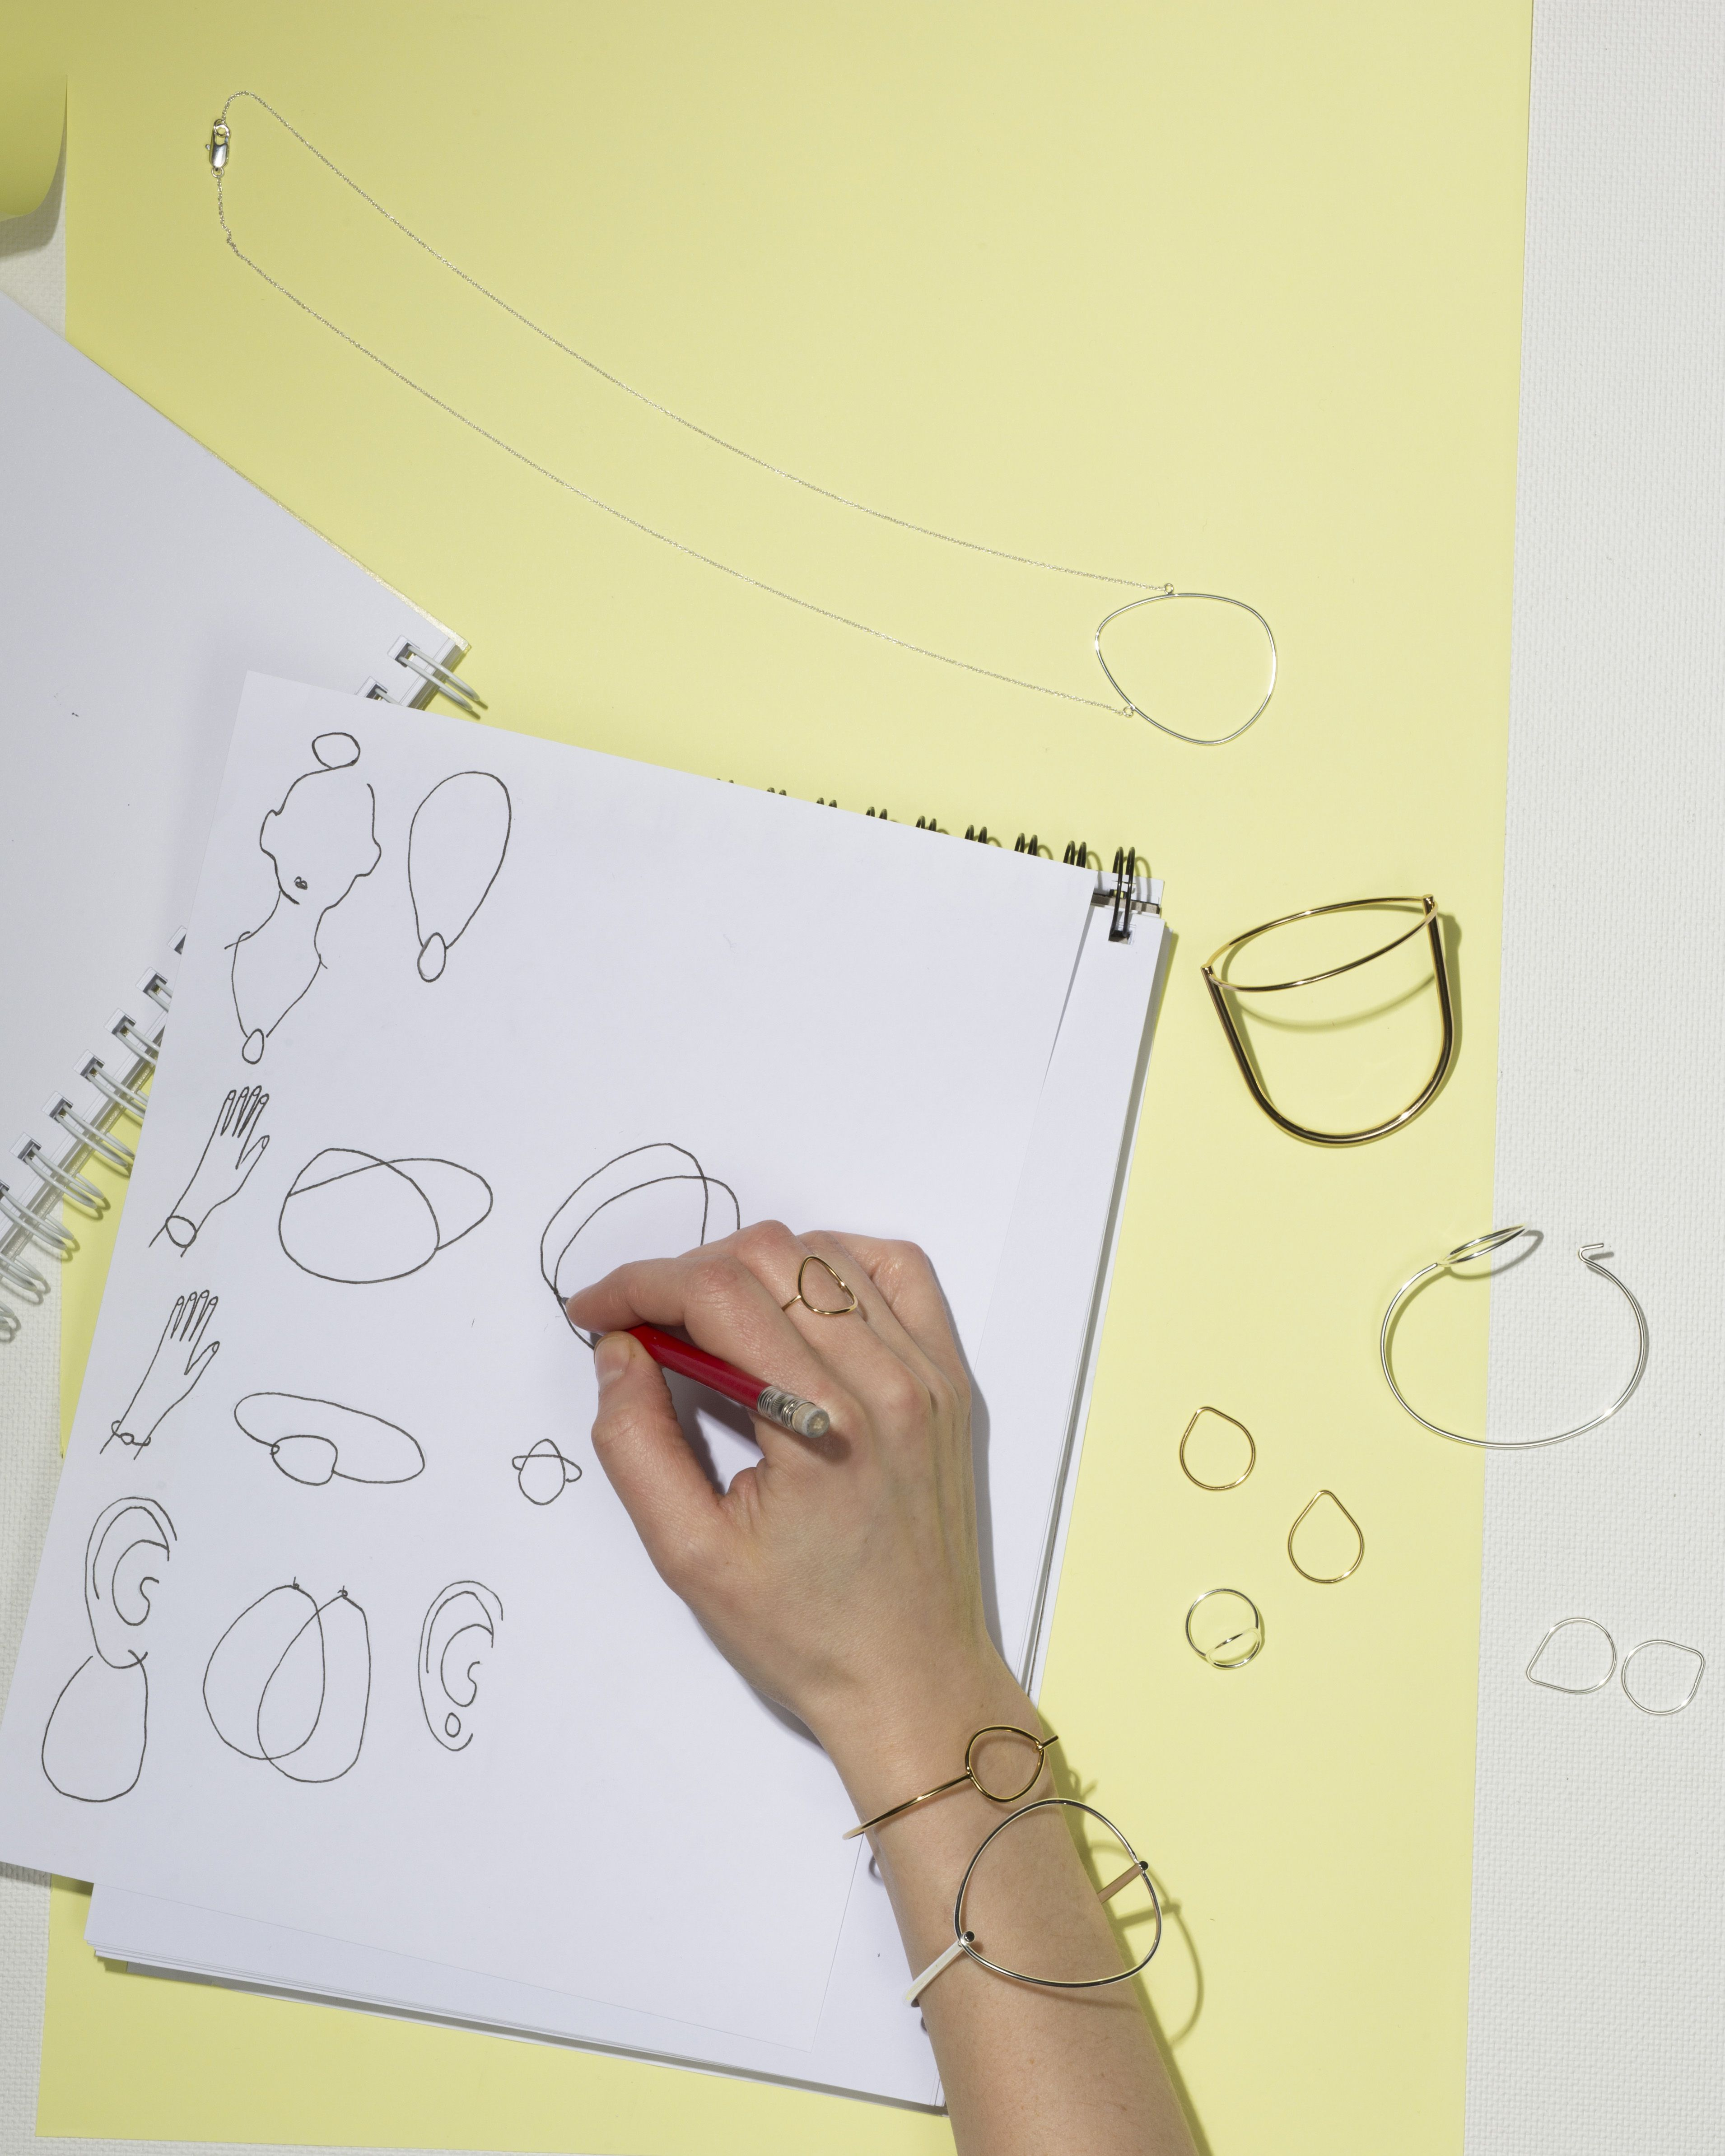 & Other Stories   Our jewellery designer Klara has a thing for delicate egg-shapes.